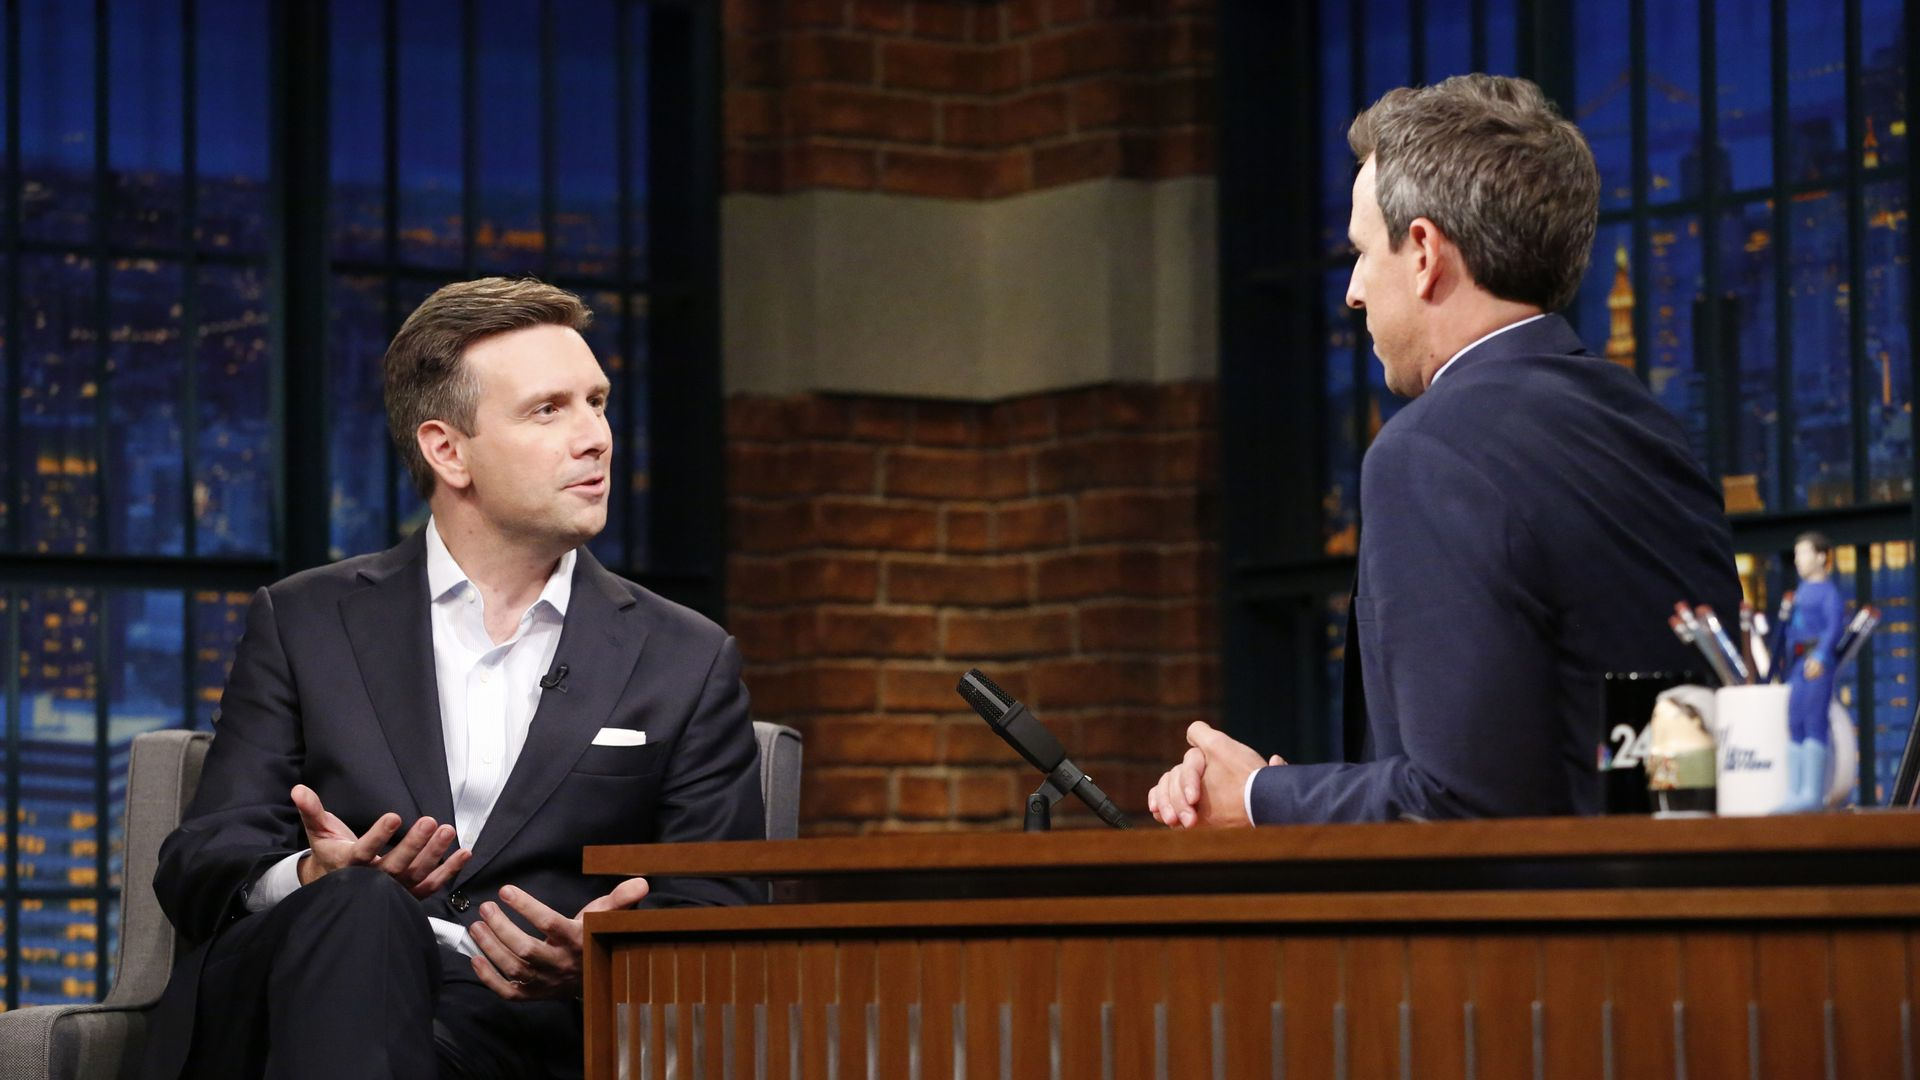 Earnest faces Meyers on the set of the talk show